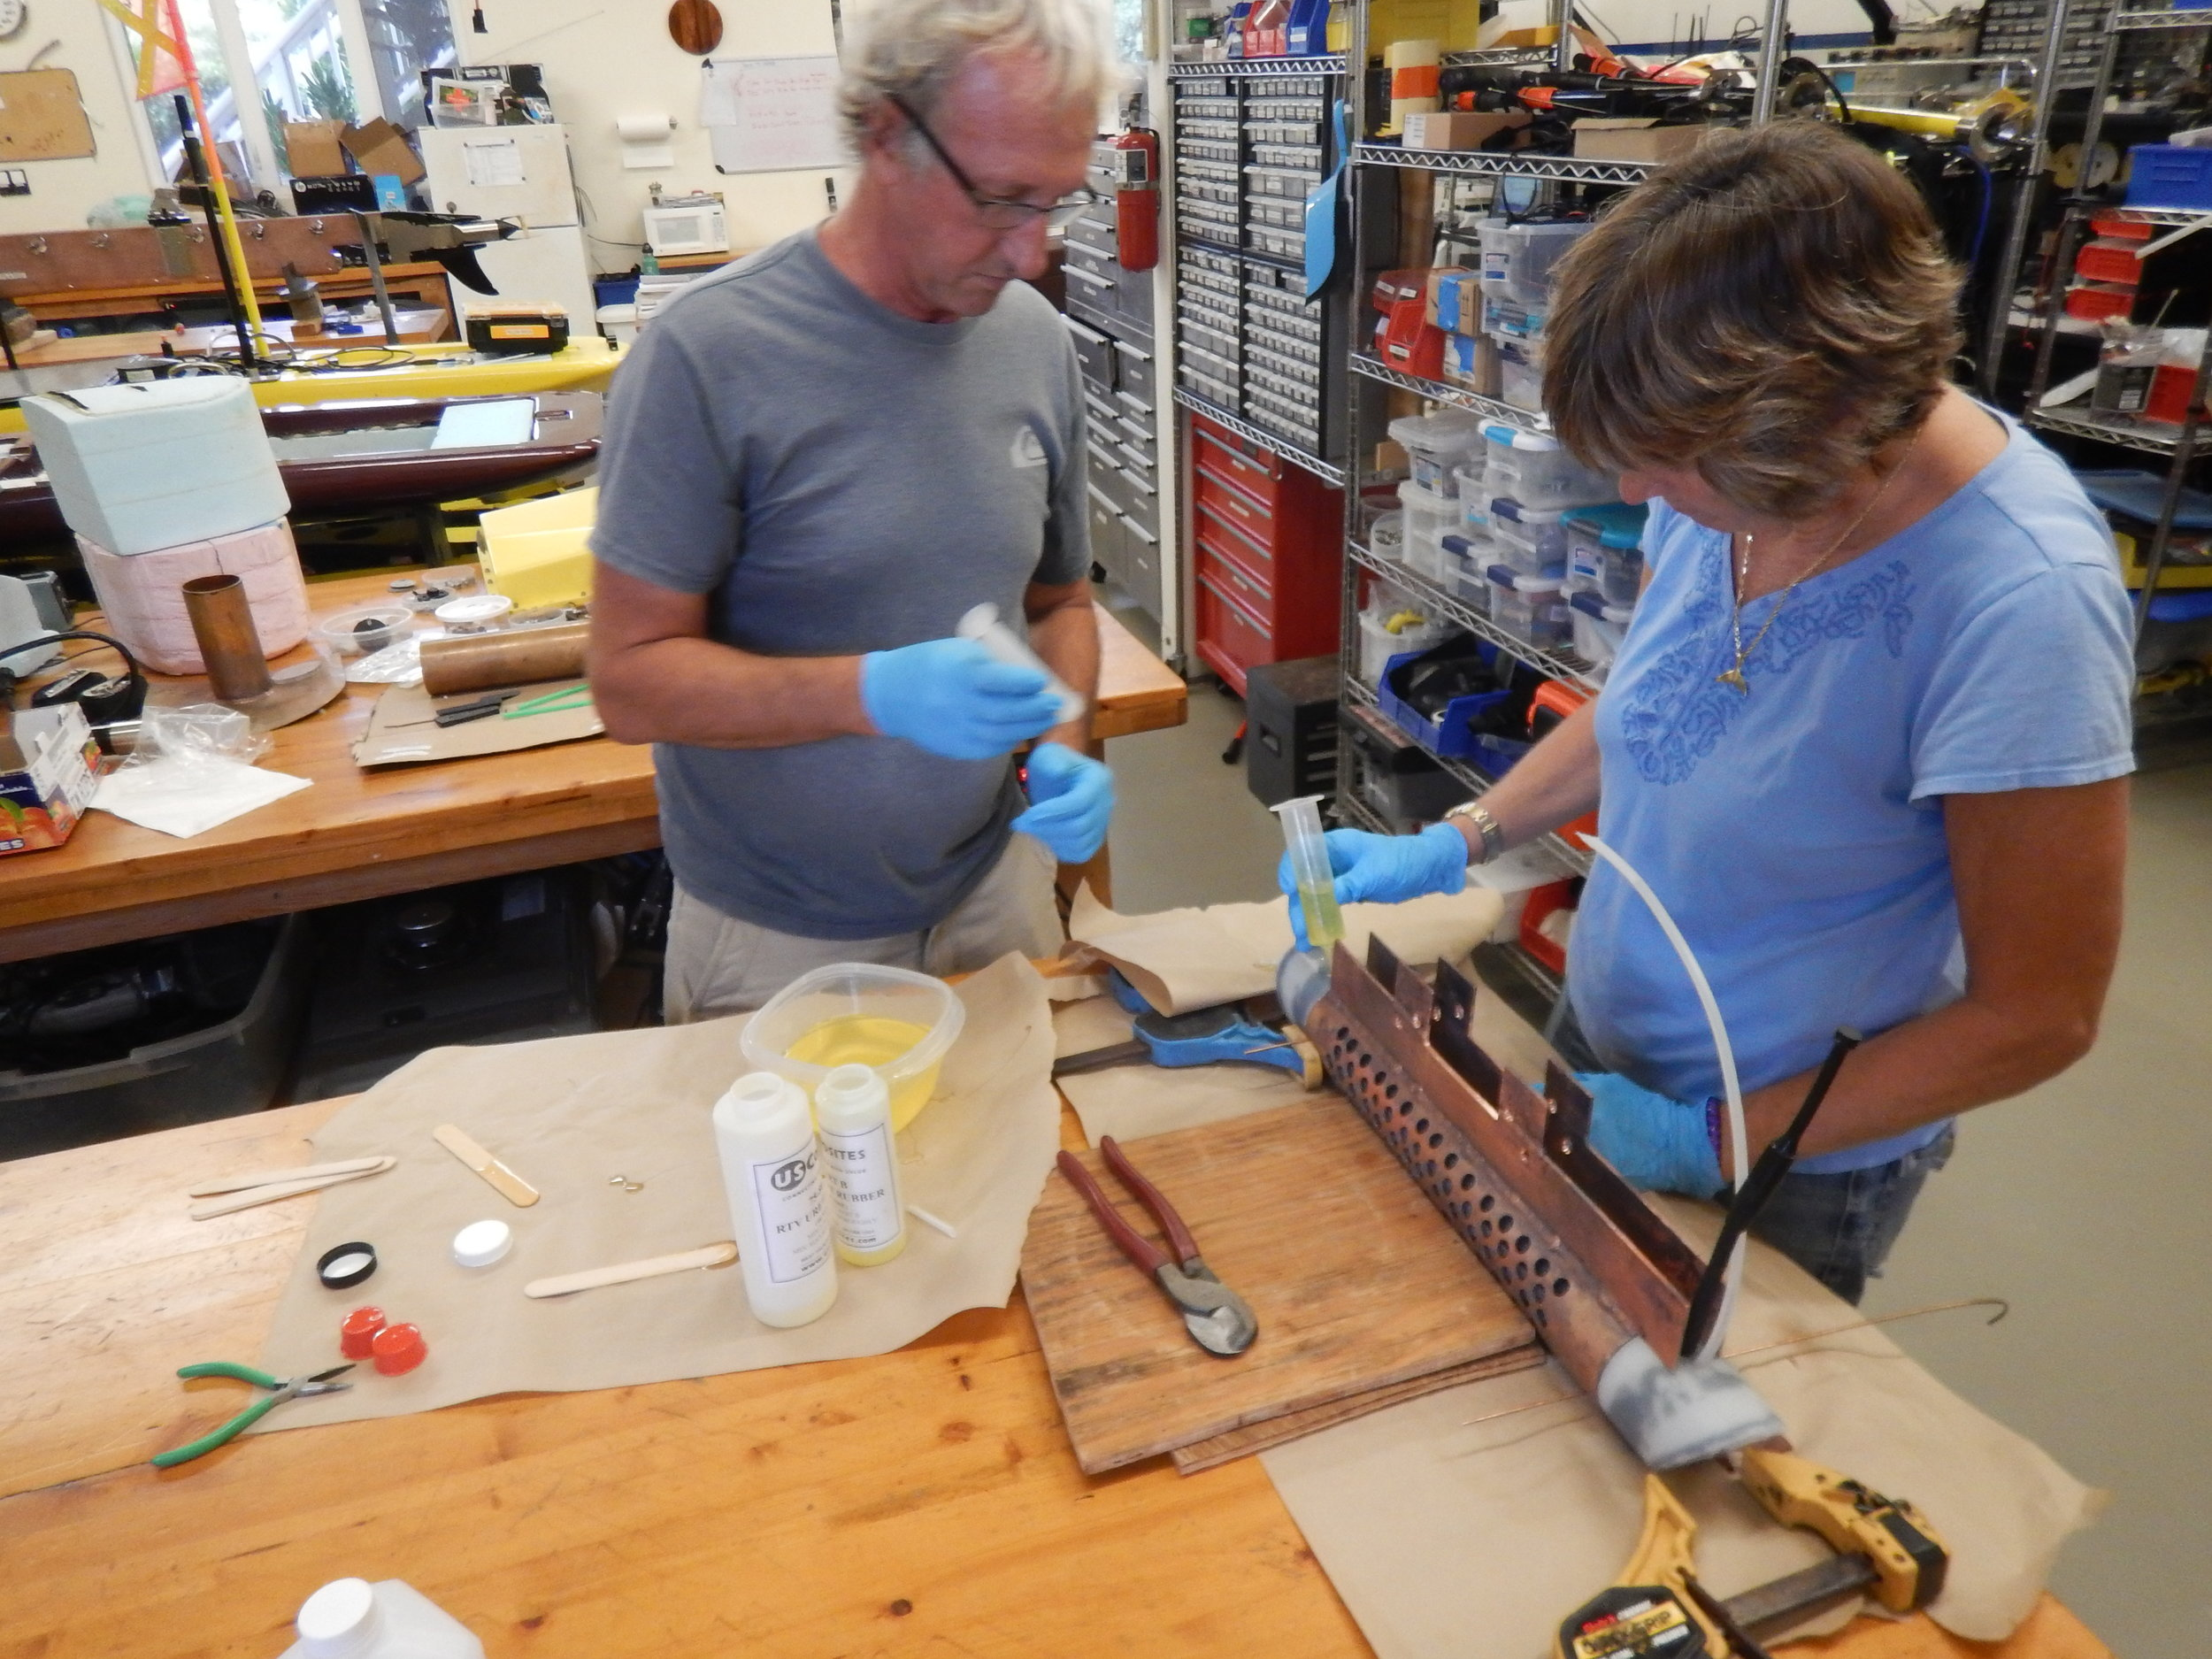 Image 4. Murray and Beth building hydrophone casing